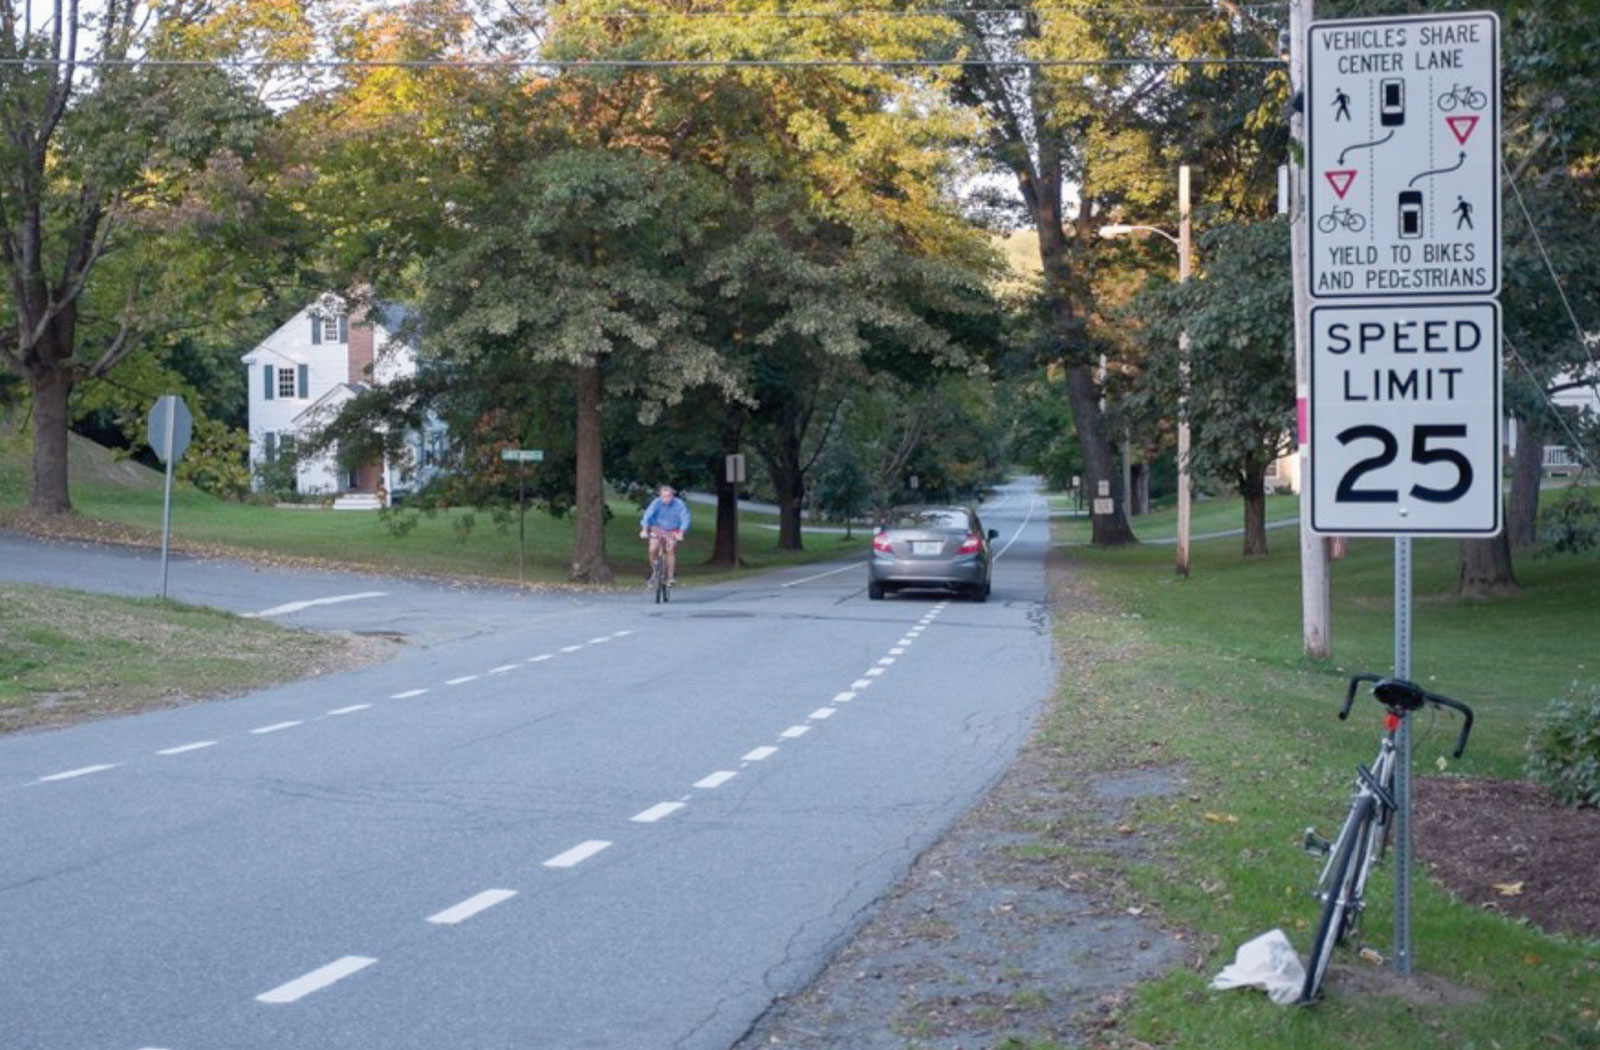 a cyclist passes a car on a road in Massachusetts with a speed limit and road usage sign in the foreground